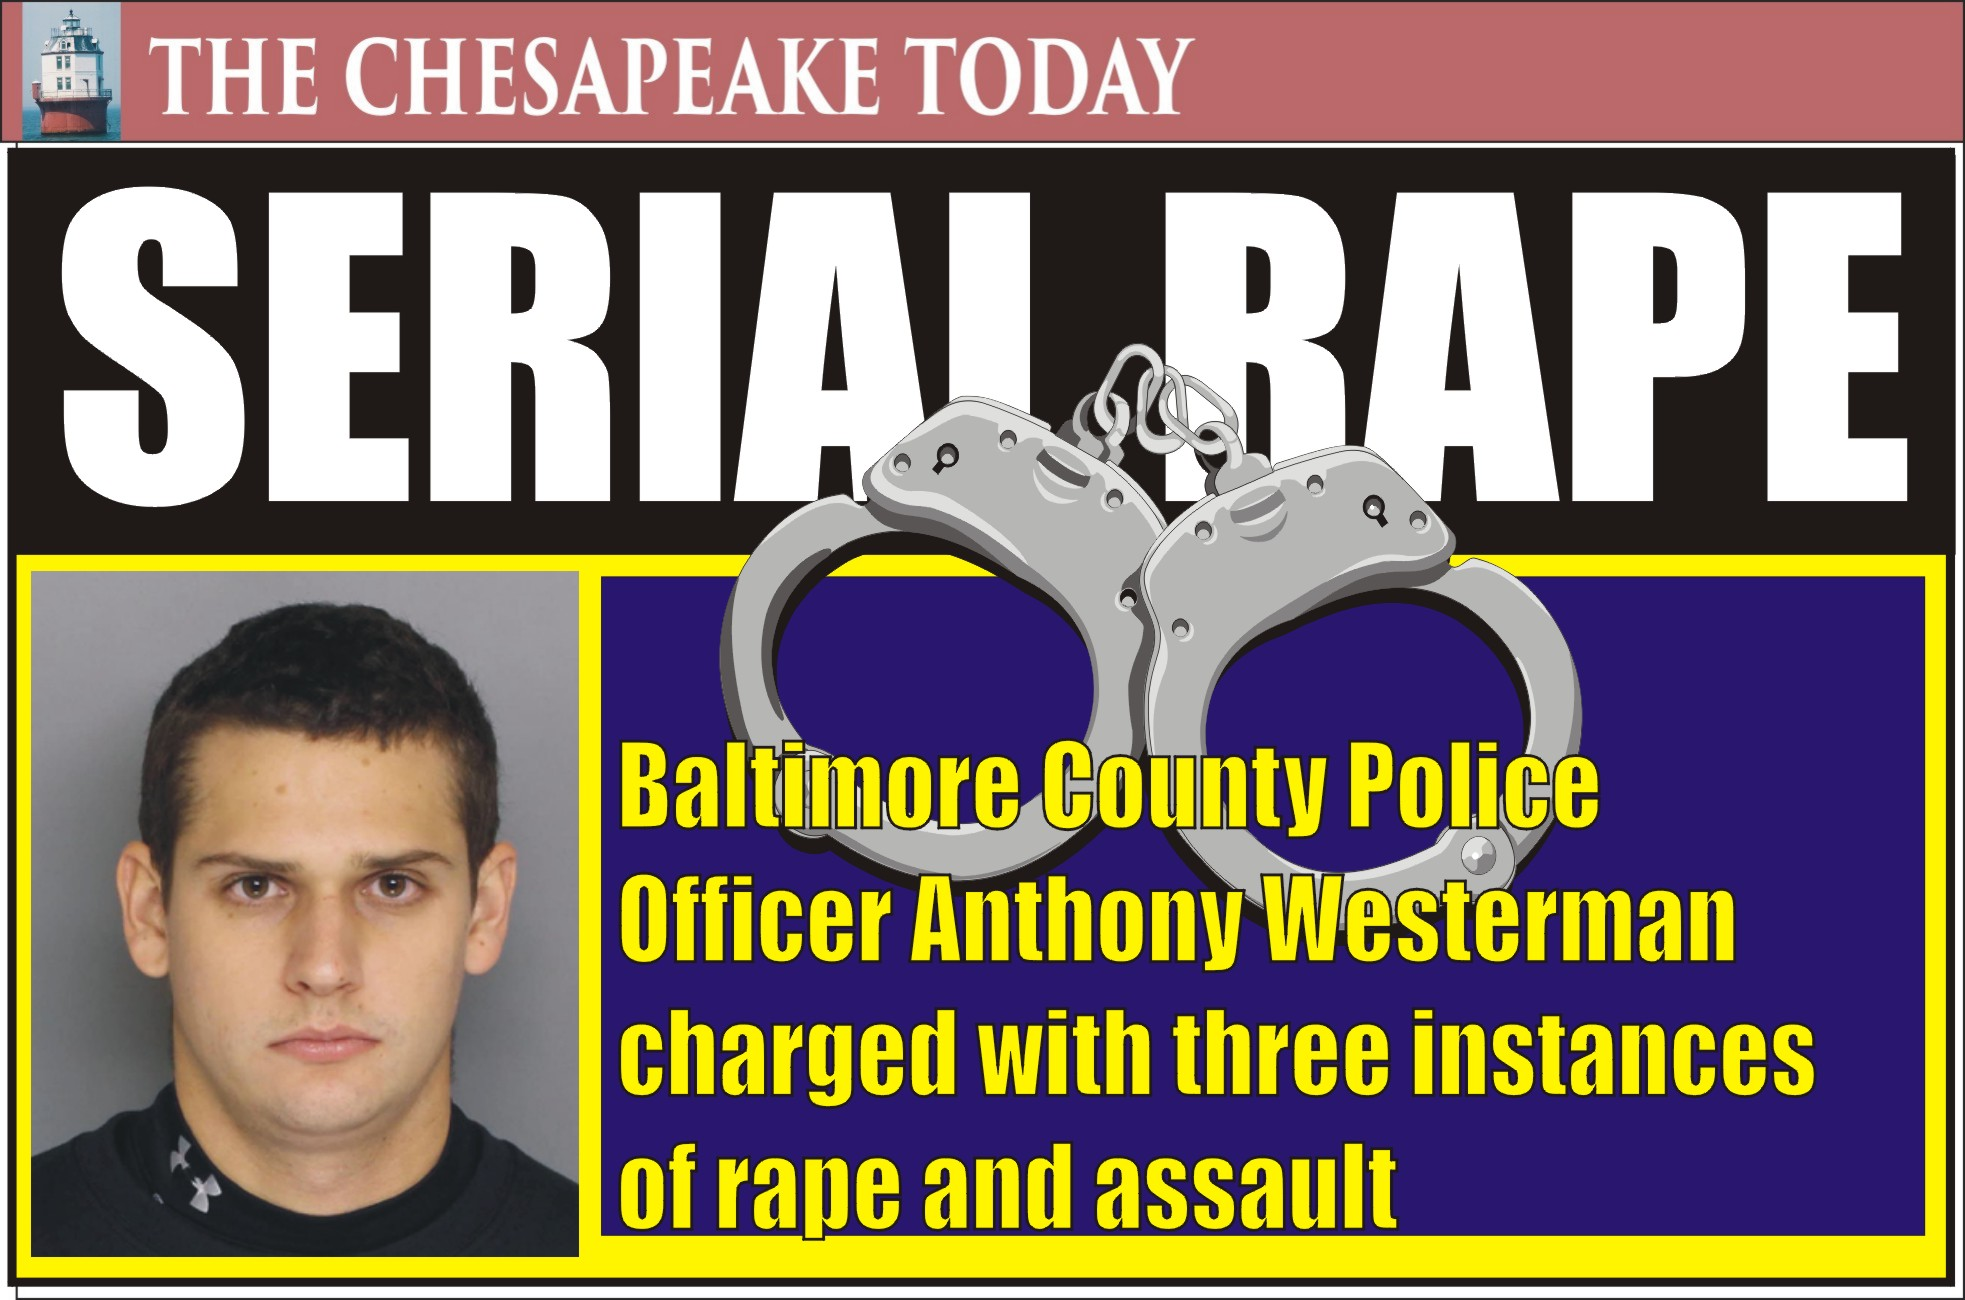 BALTIMORE COUNTY POLICE BEAT: Officer Anthony Westerman charged with multiple counts of rape and assault